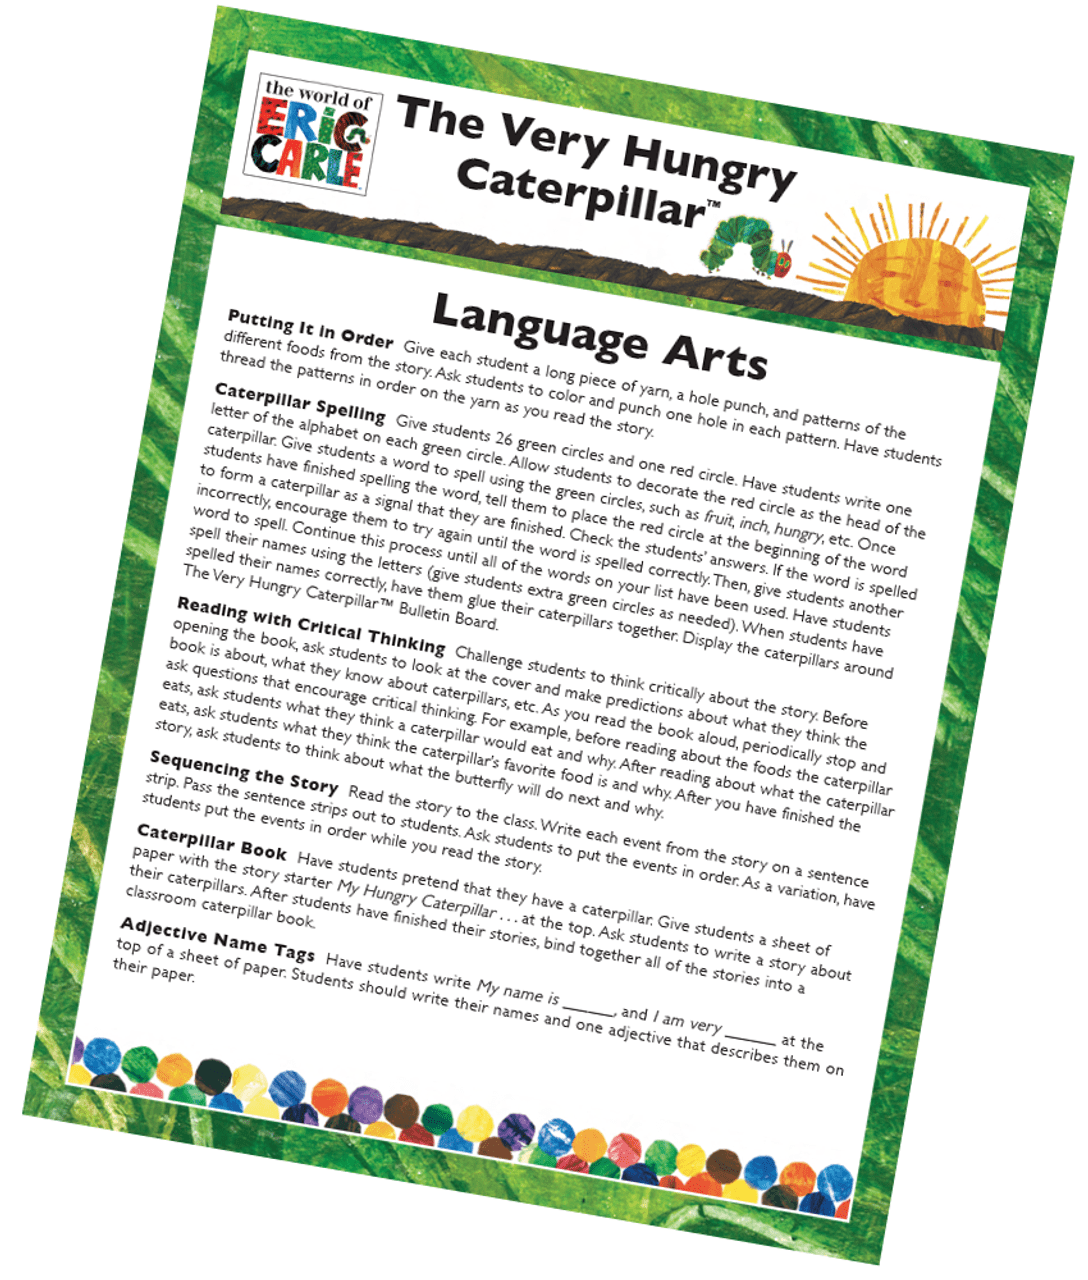 small resolution of The Very Hungry Caterpillar Language Arts Activity Free Printable   Carson  Dellosa